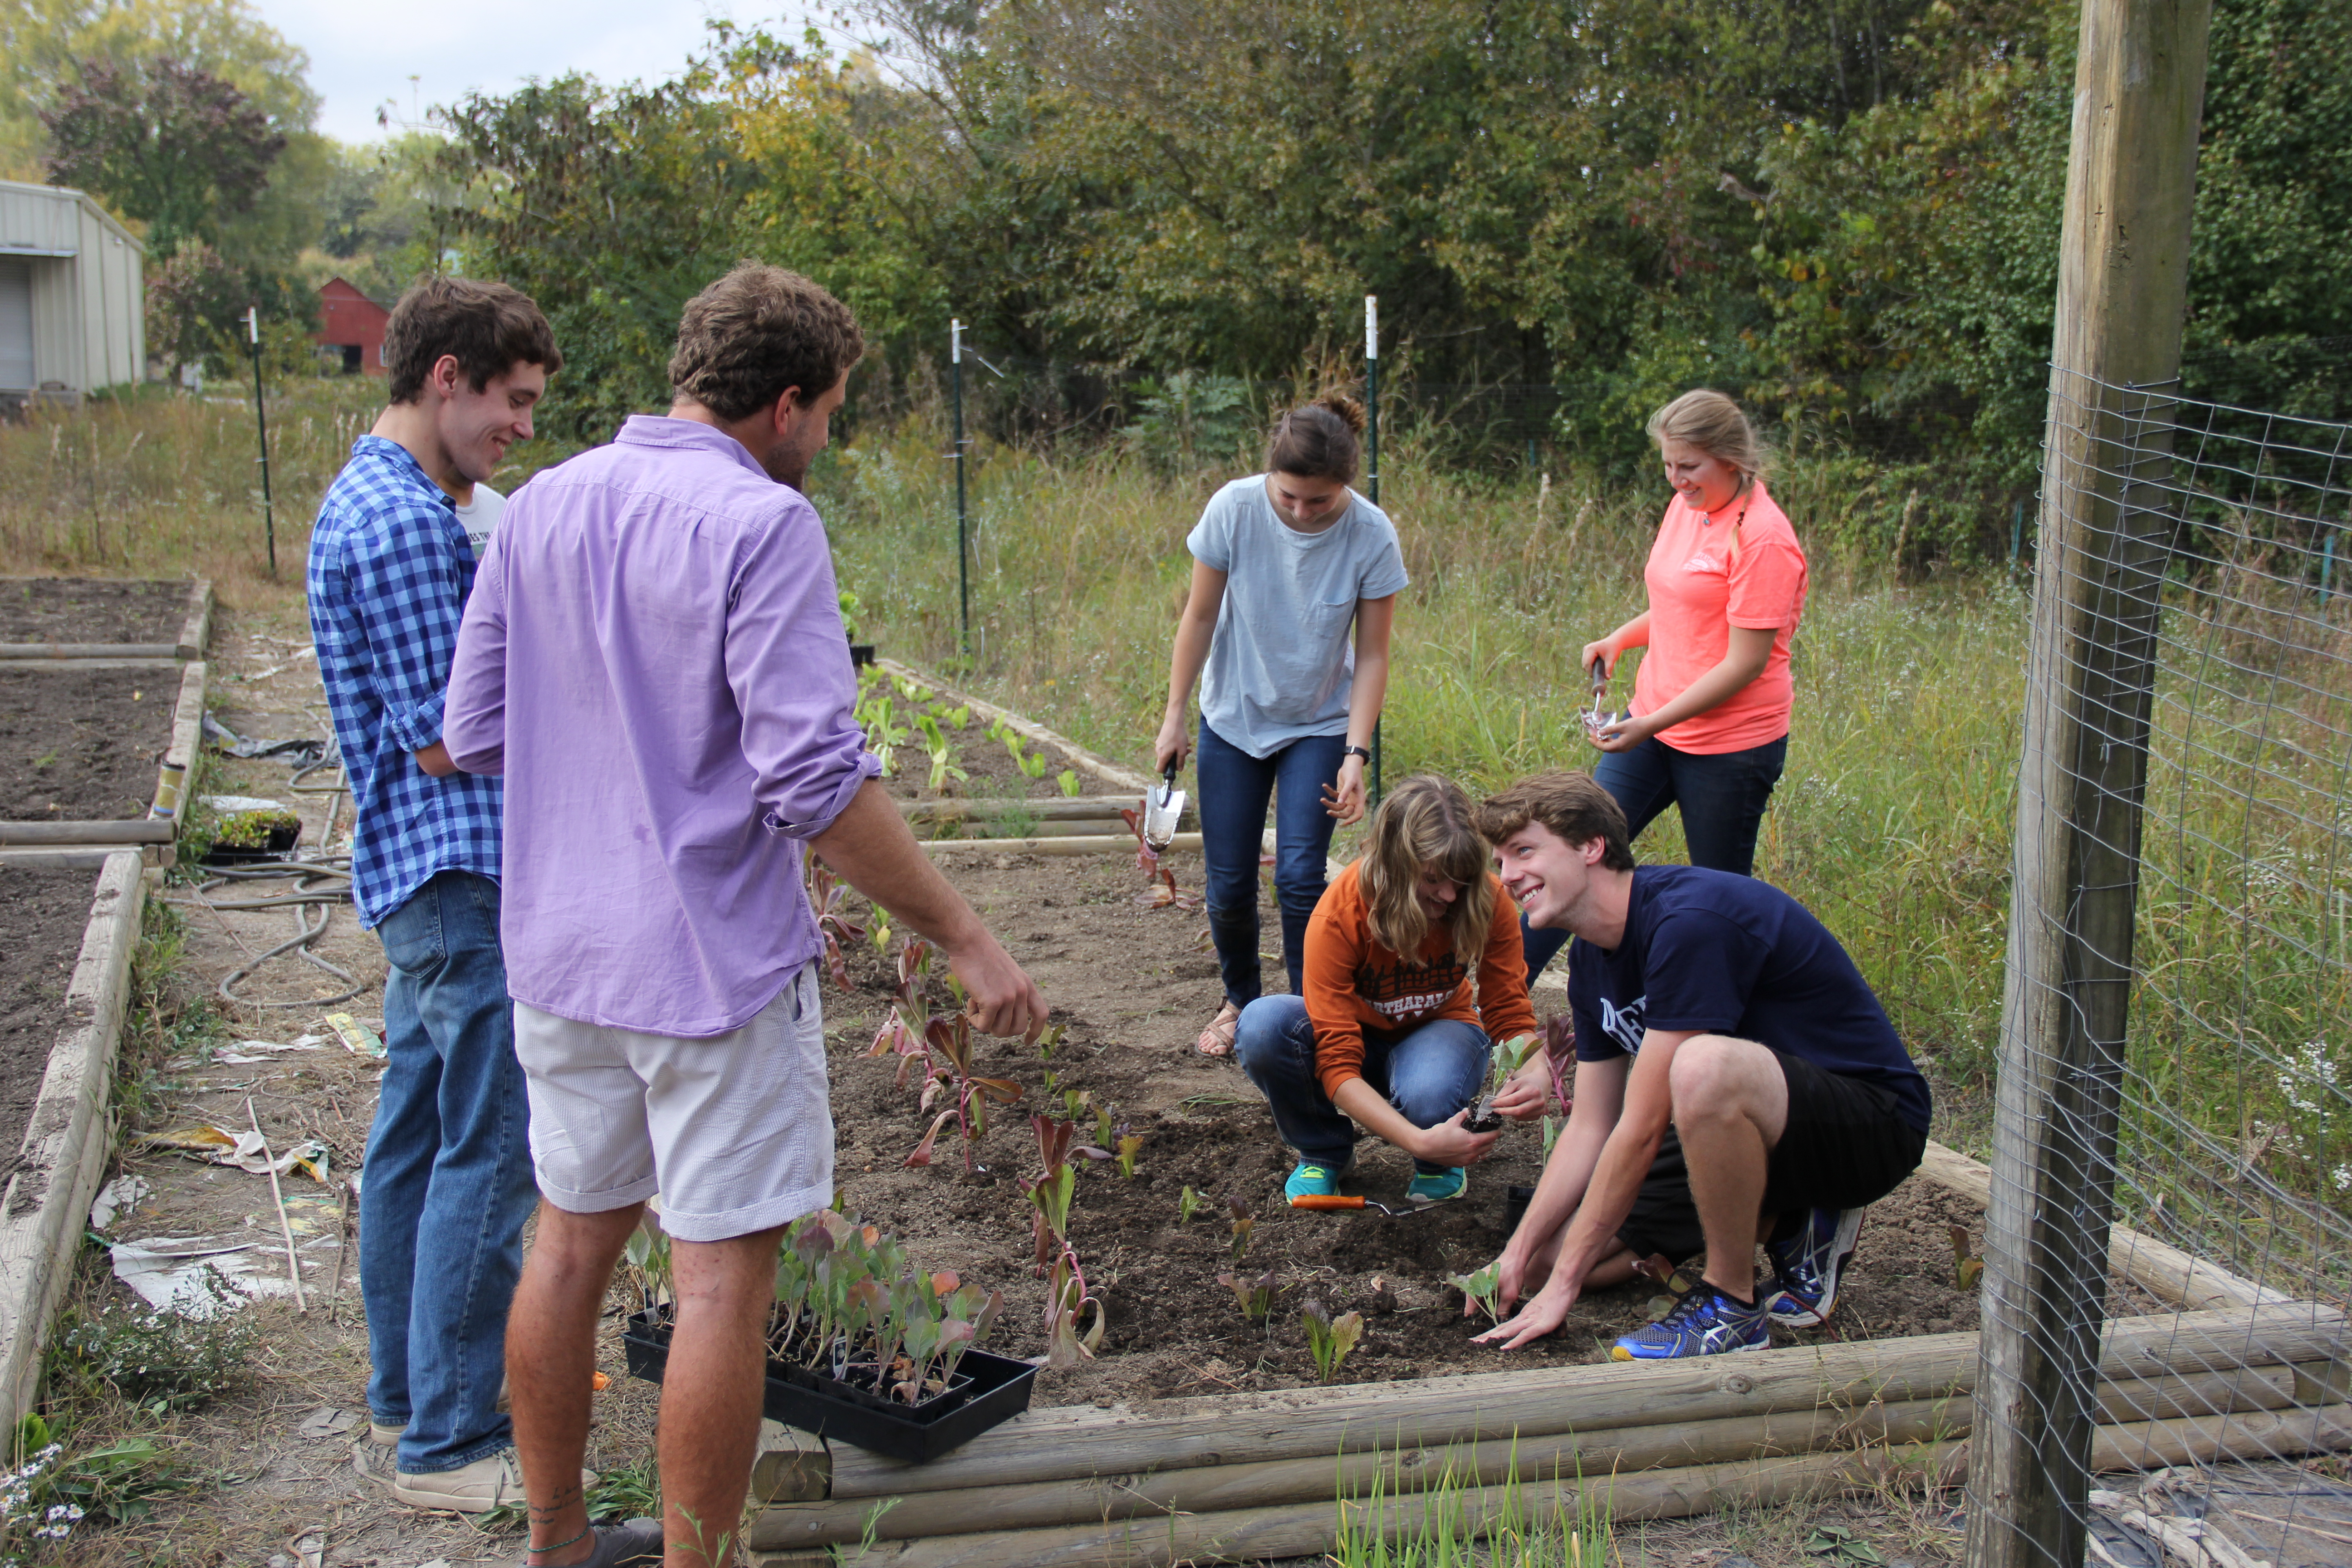 Anthropology and Environmental Studies students from Berry College working in the food pantry garden